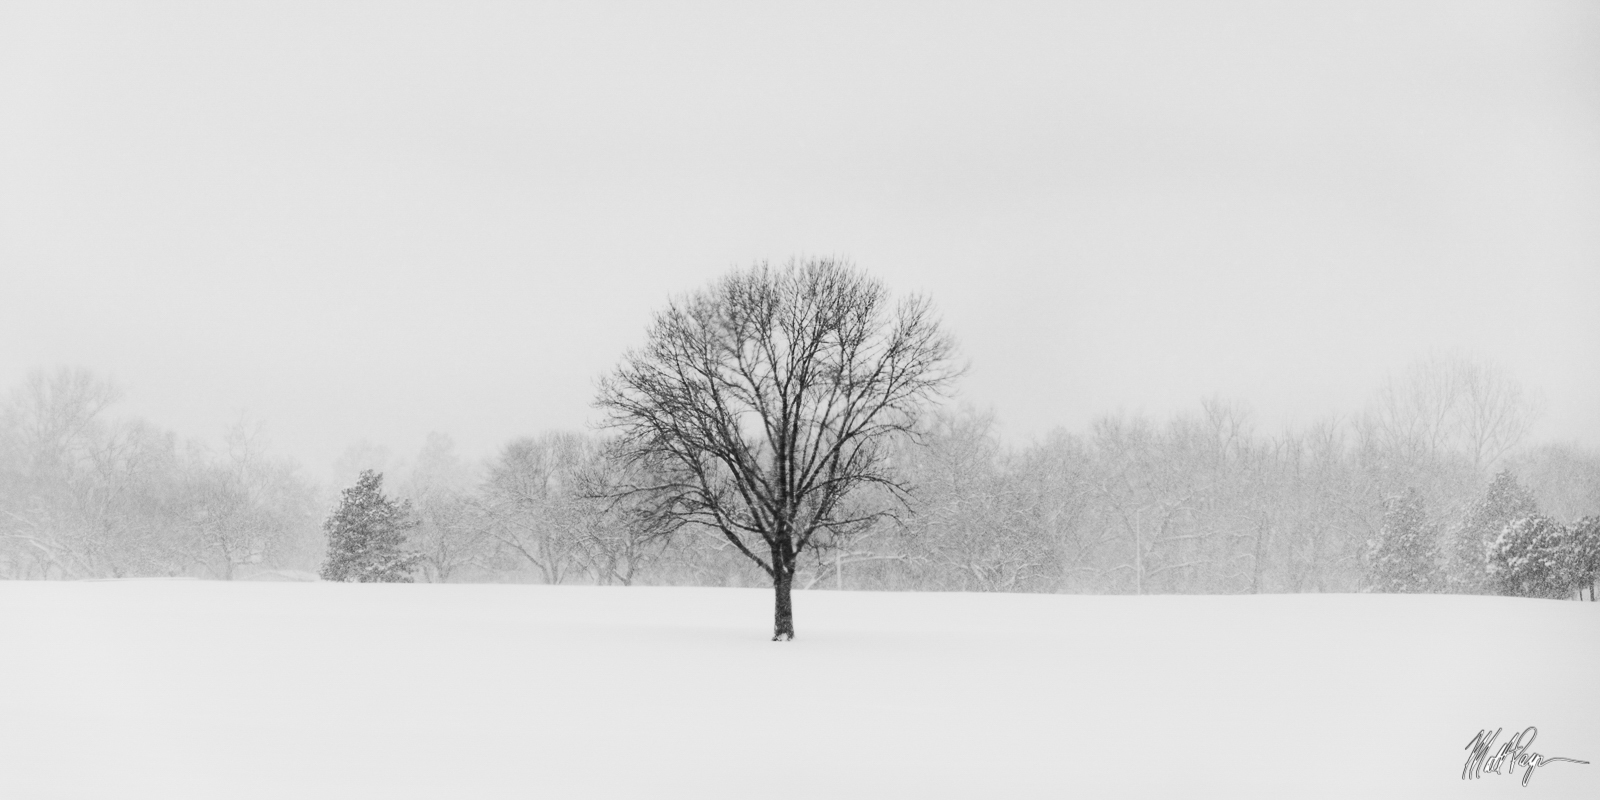 Black and White, Colorado, Landscape, Panorama, Snow, Winter, tree, alone, isolation, Landscape Photography, photo